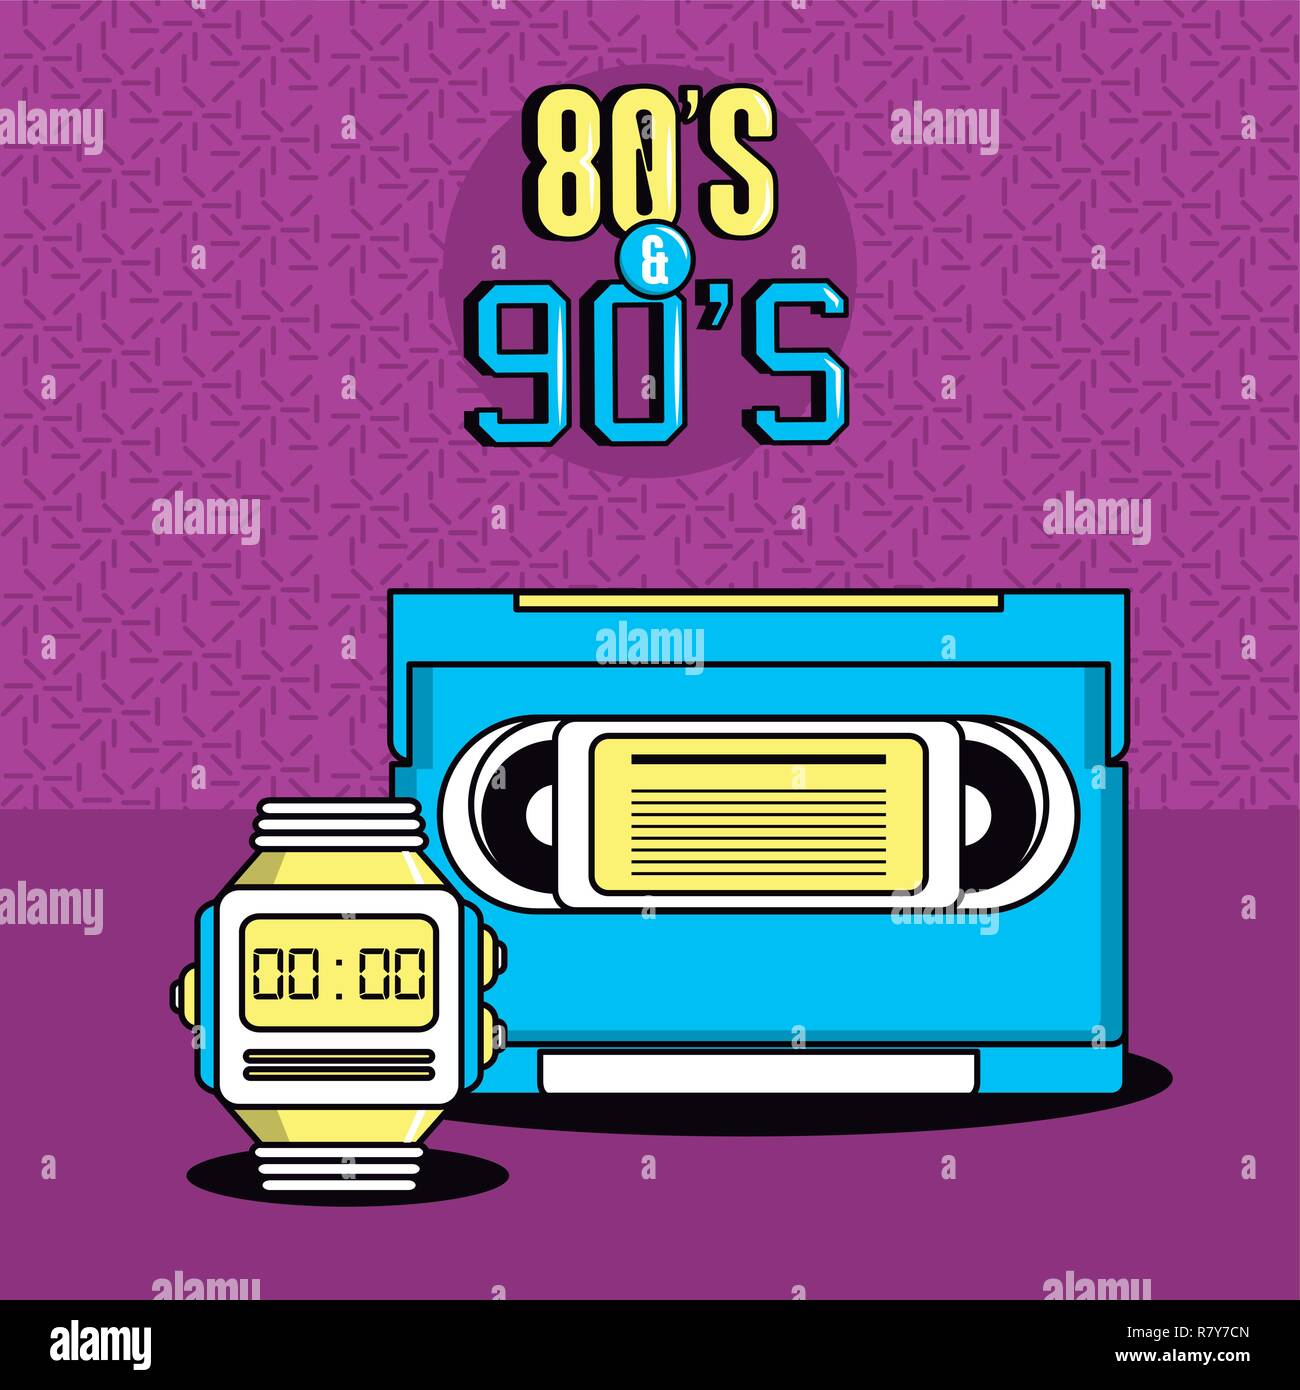 eighties and nineties style - Stock Vector